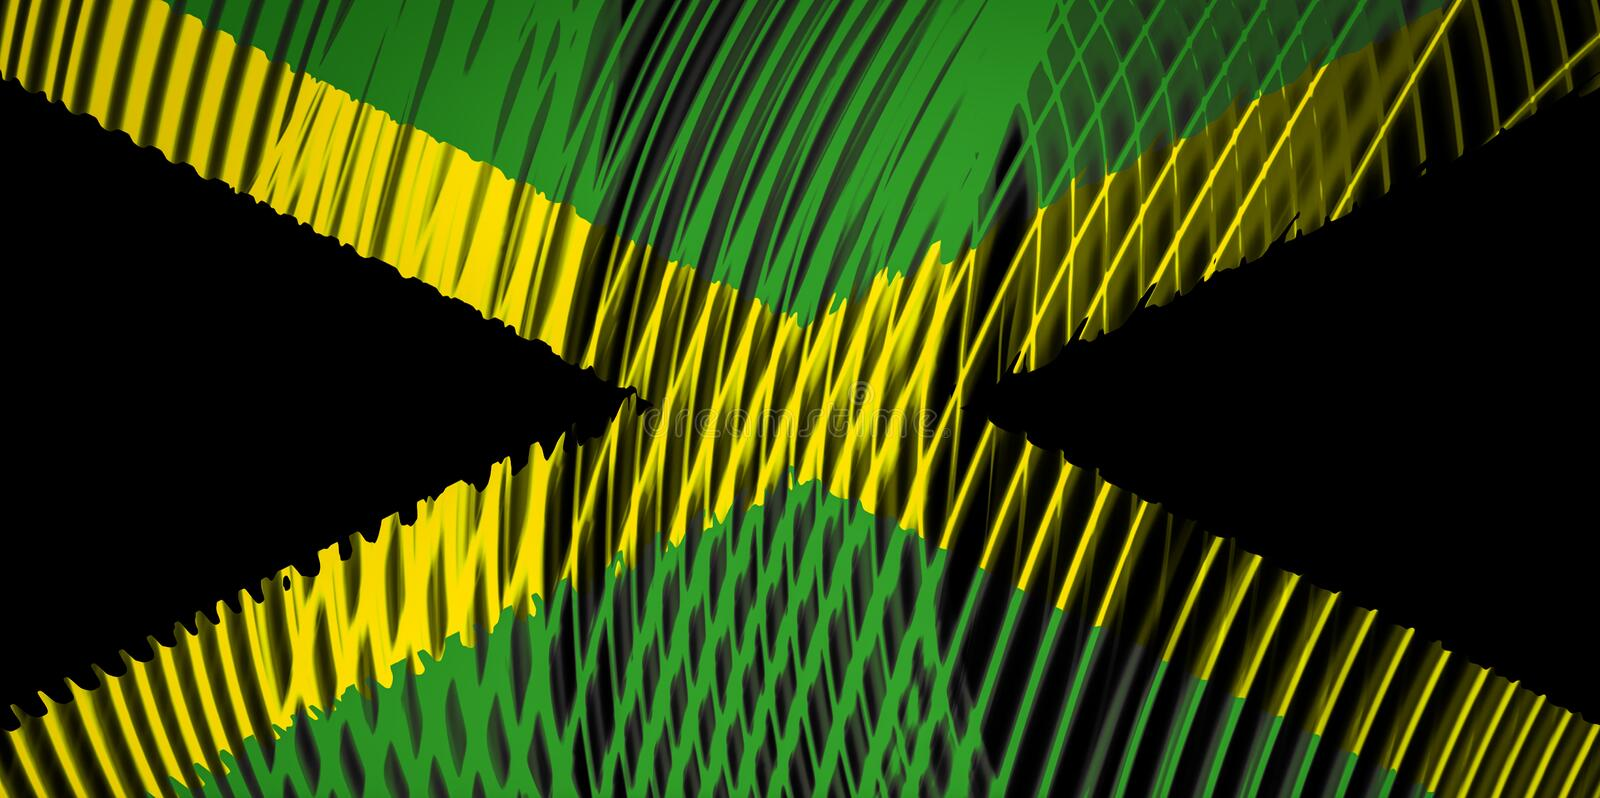 State flag of Jamaica on the background. Of neon geometric stripes royalty free illustration